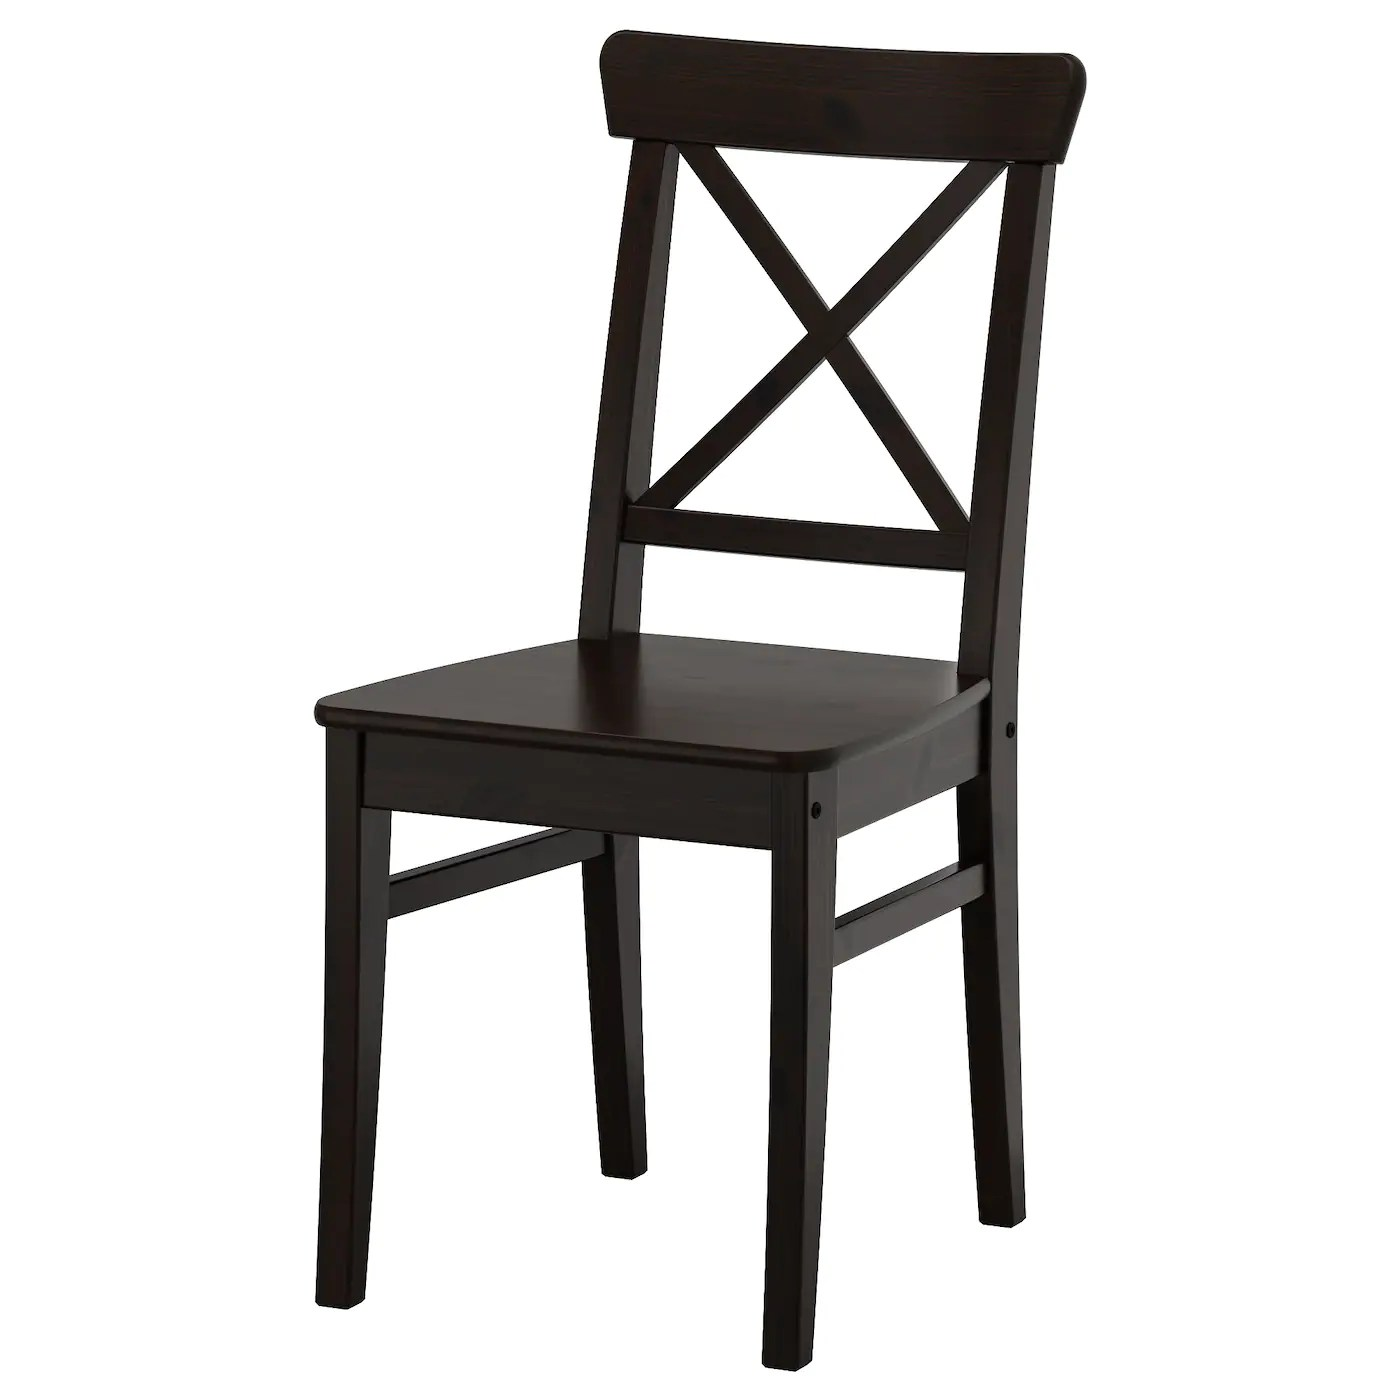 Black White Chair Ingolf Chair Brown Black Ikea